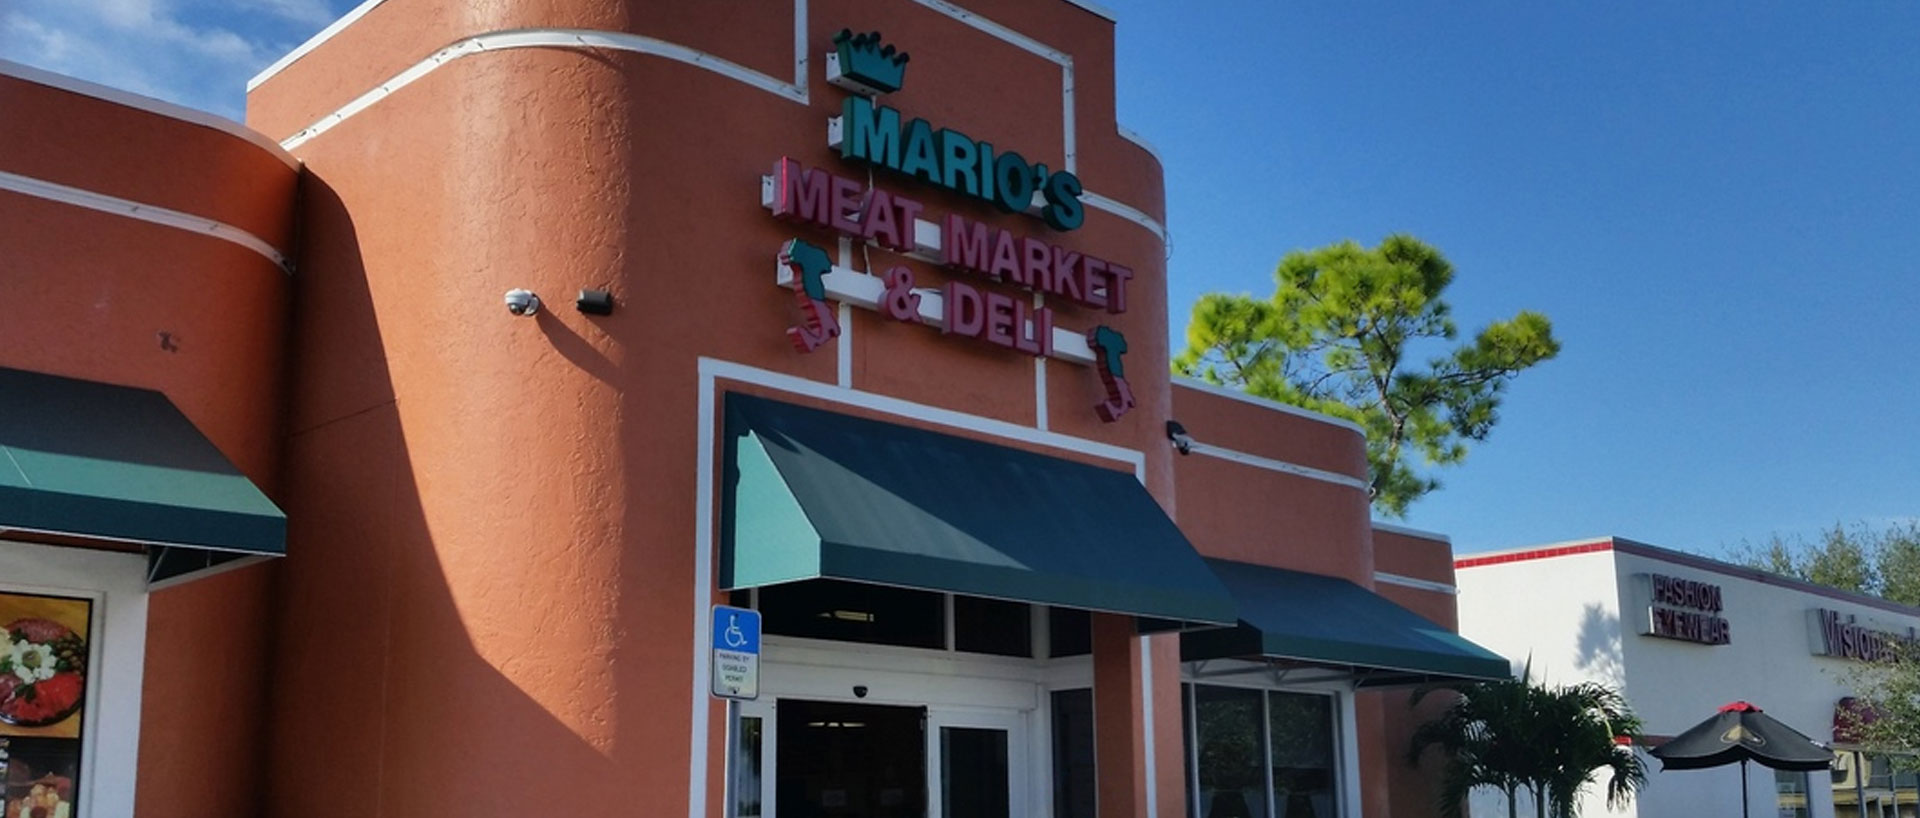 Marios Meat Market and Deli - Location